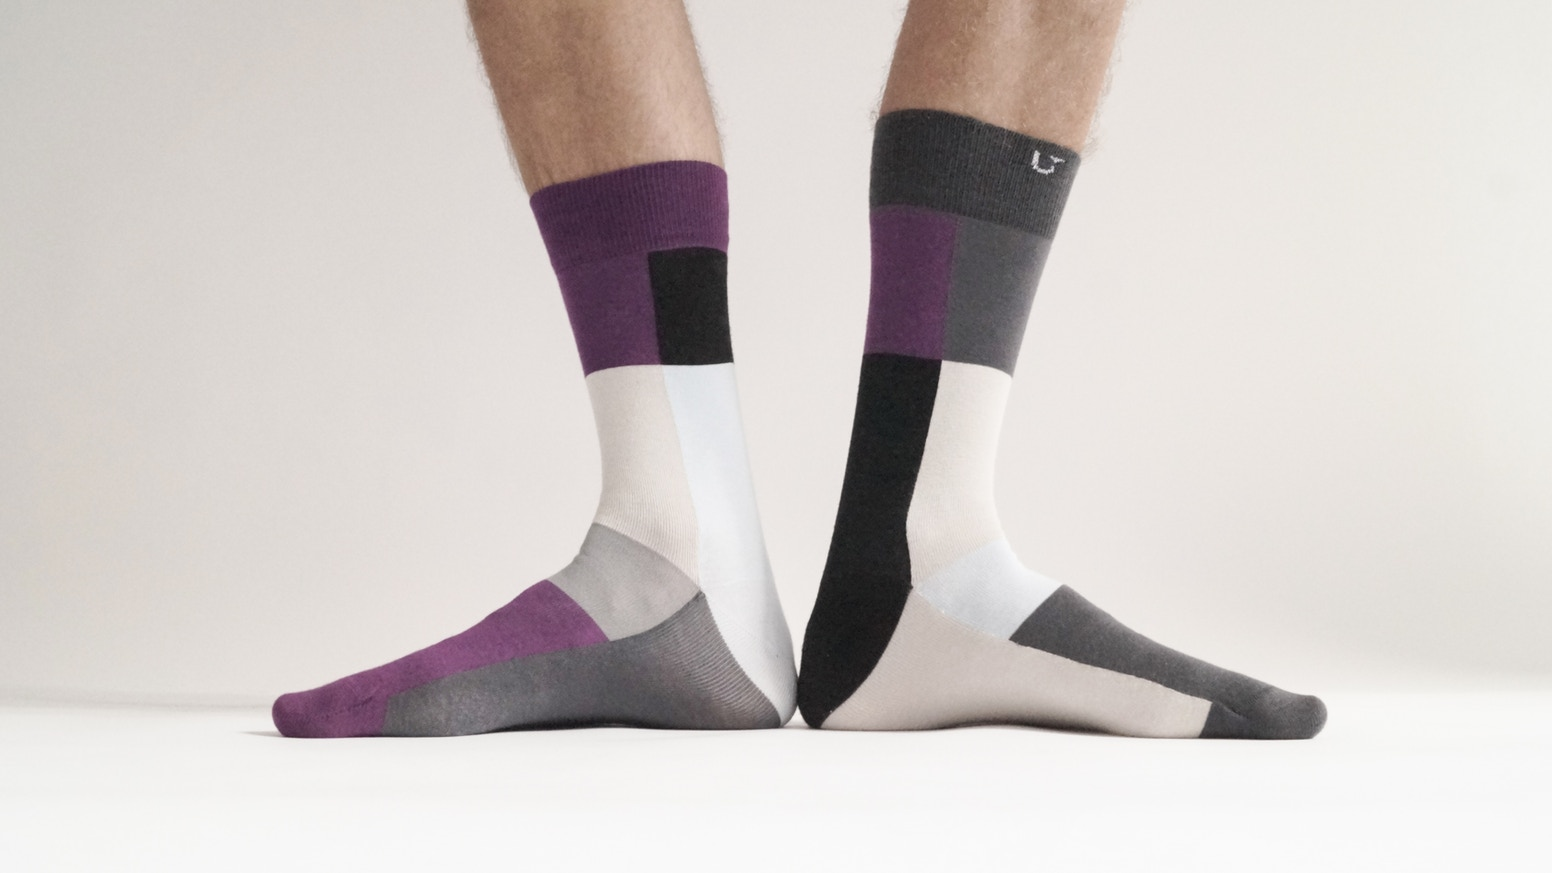 The first ever organic, sustainable, innovative, high-end, designer socks. No more pairing socks. No more wasting socks.